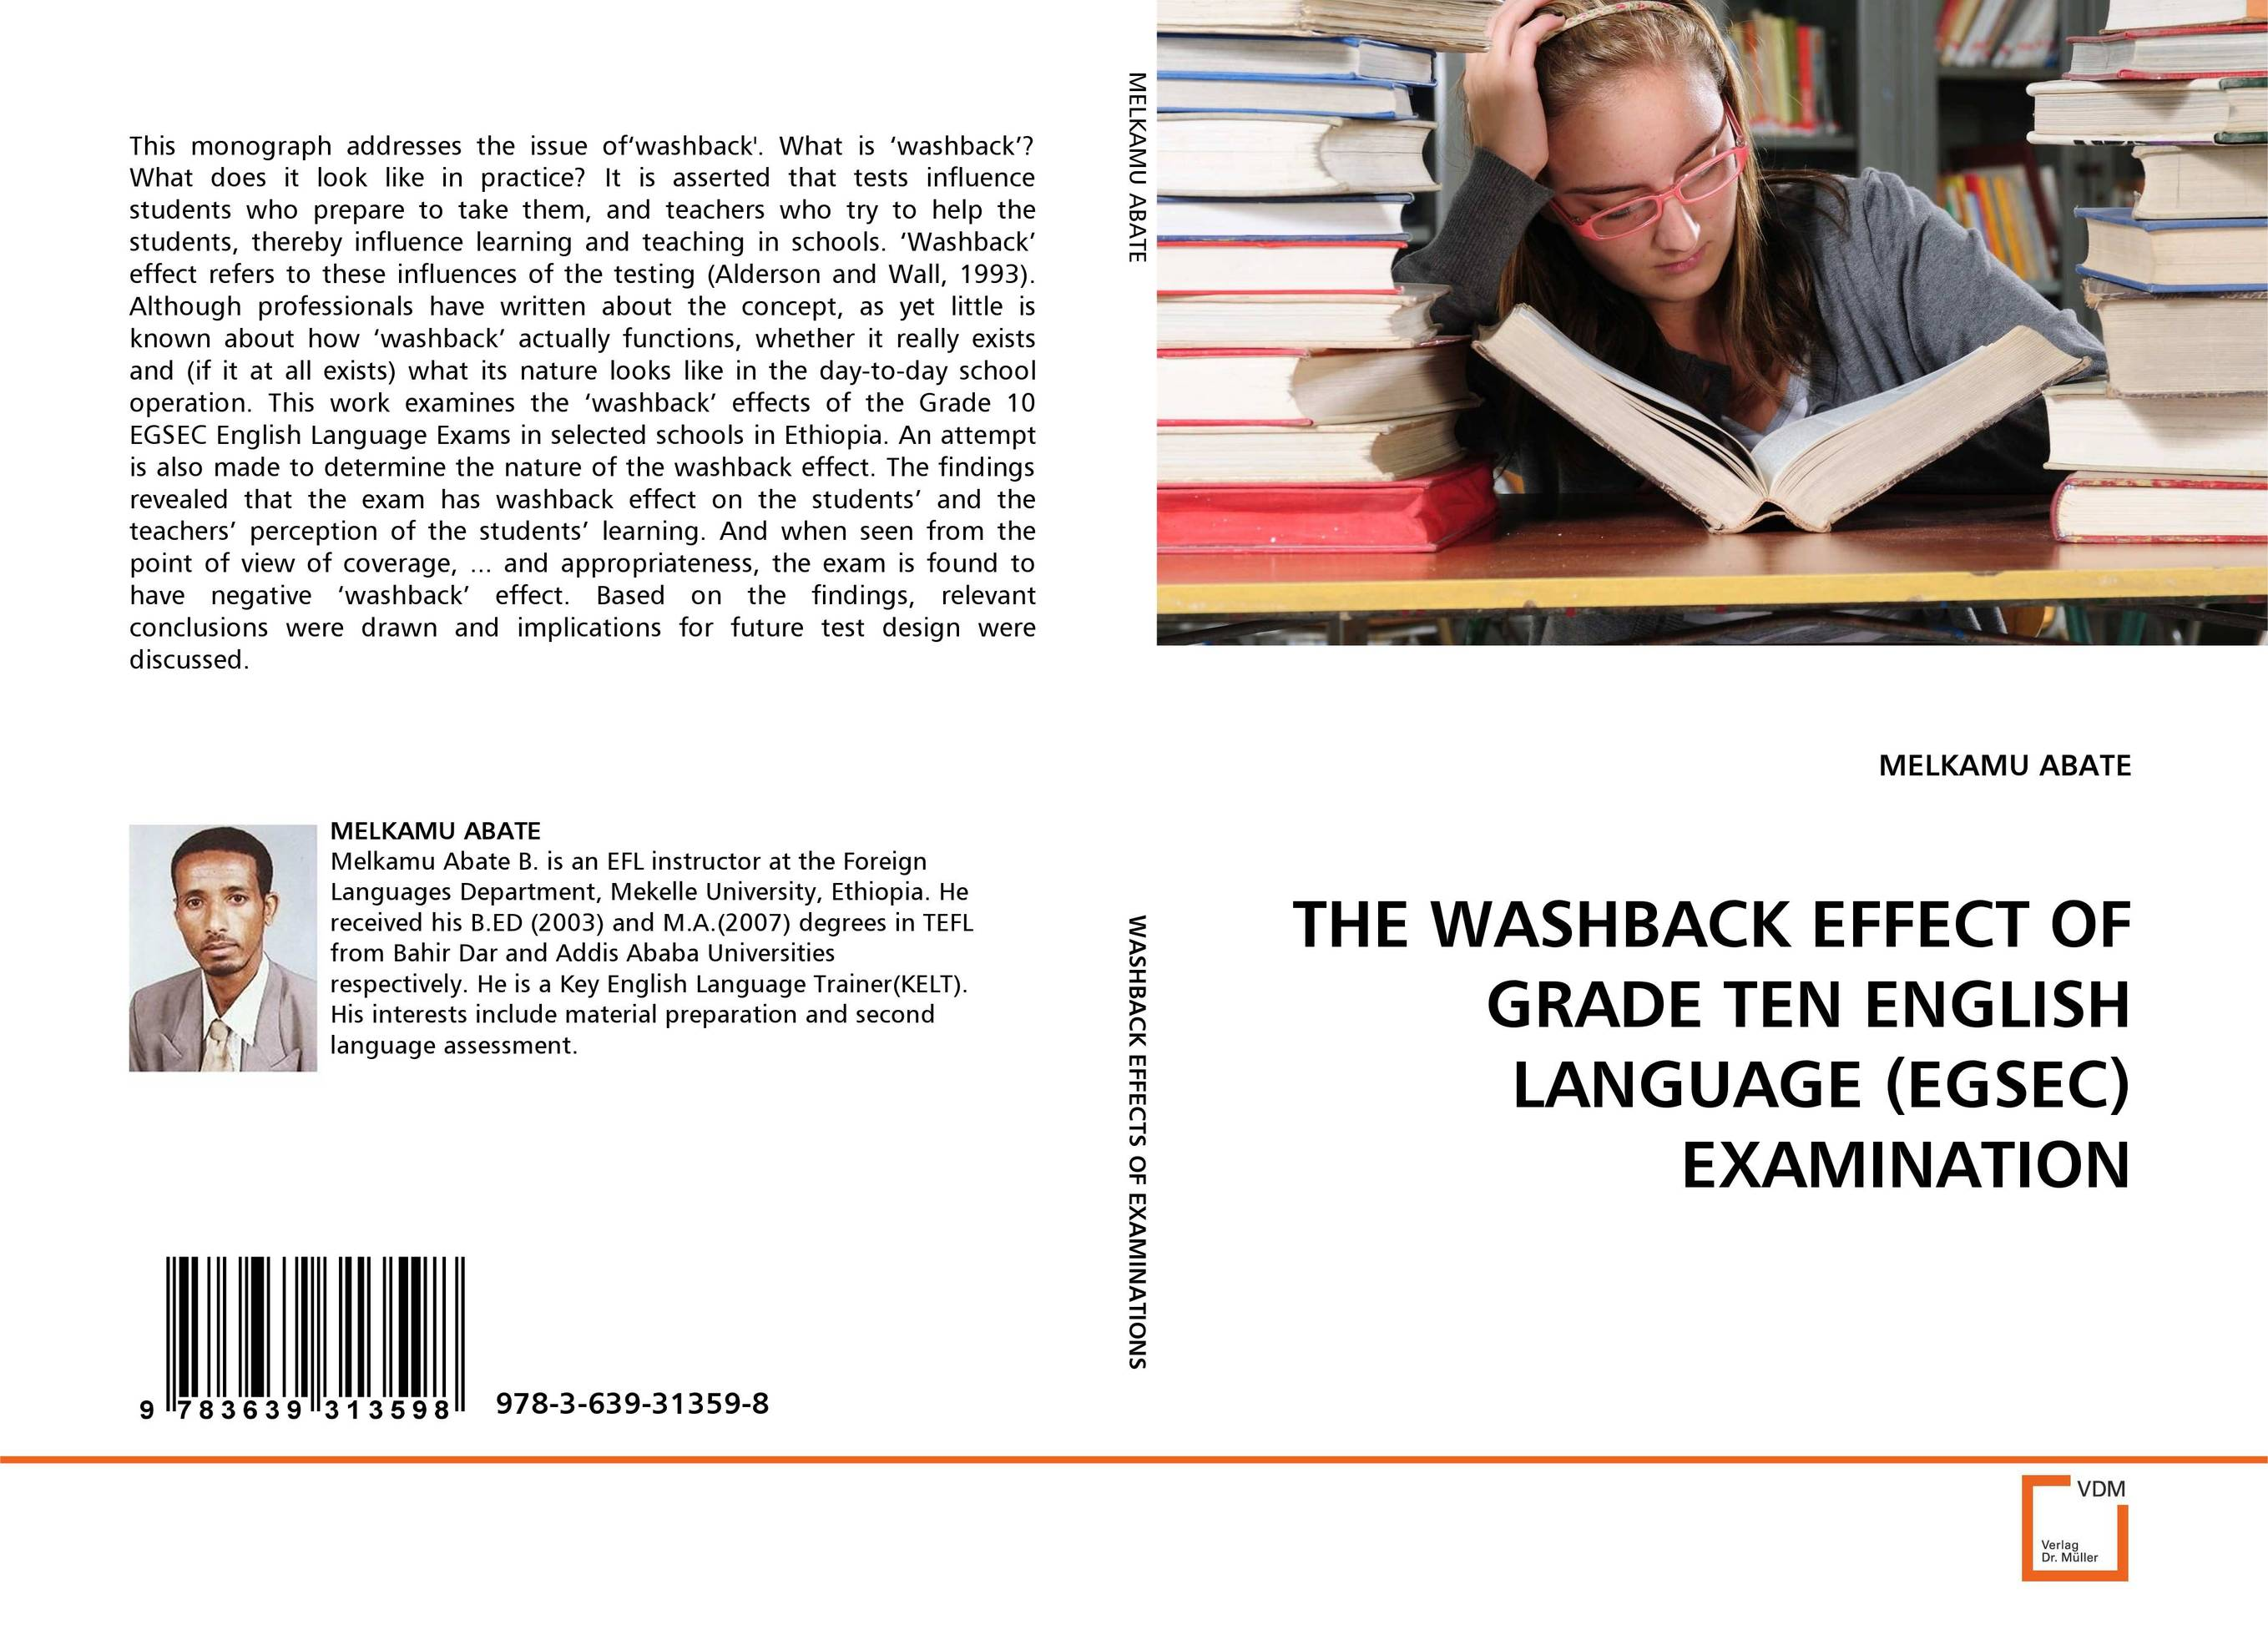 THE WASHBACK EFFECT OF GRADE TEN ENGLISH LANGUAGE (EGSEC) EXAMINATION vishal polara and pooja bhatt effect of node density and transmission range on zrp